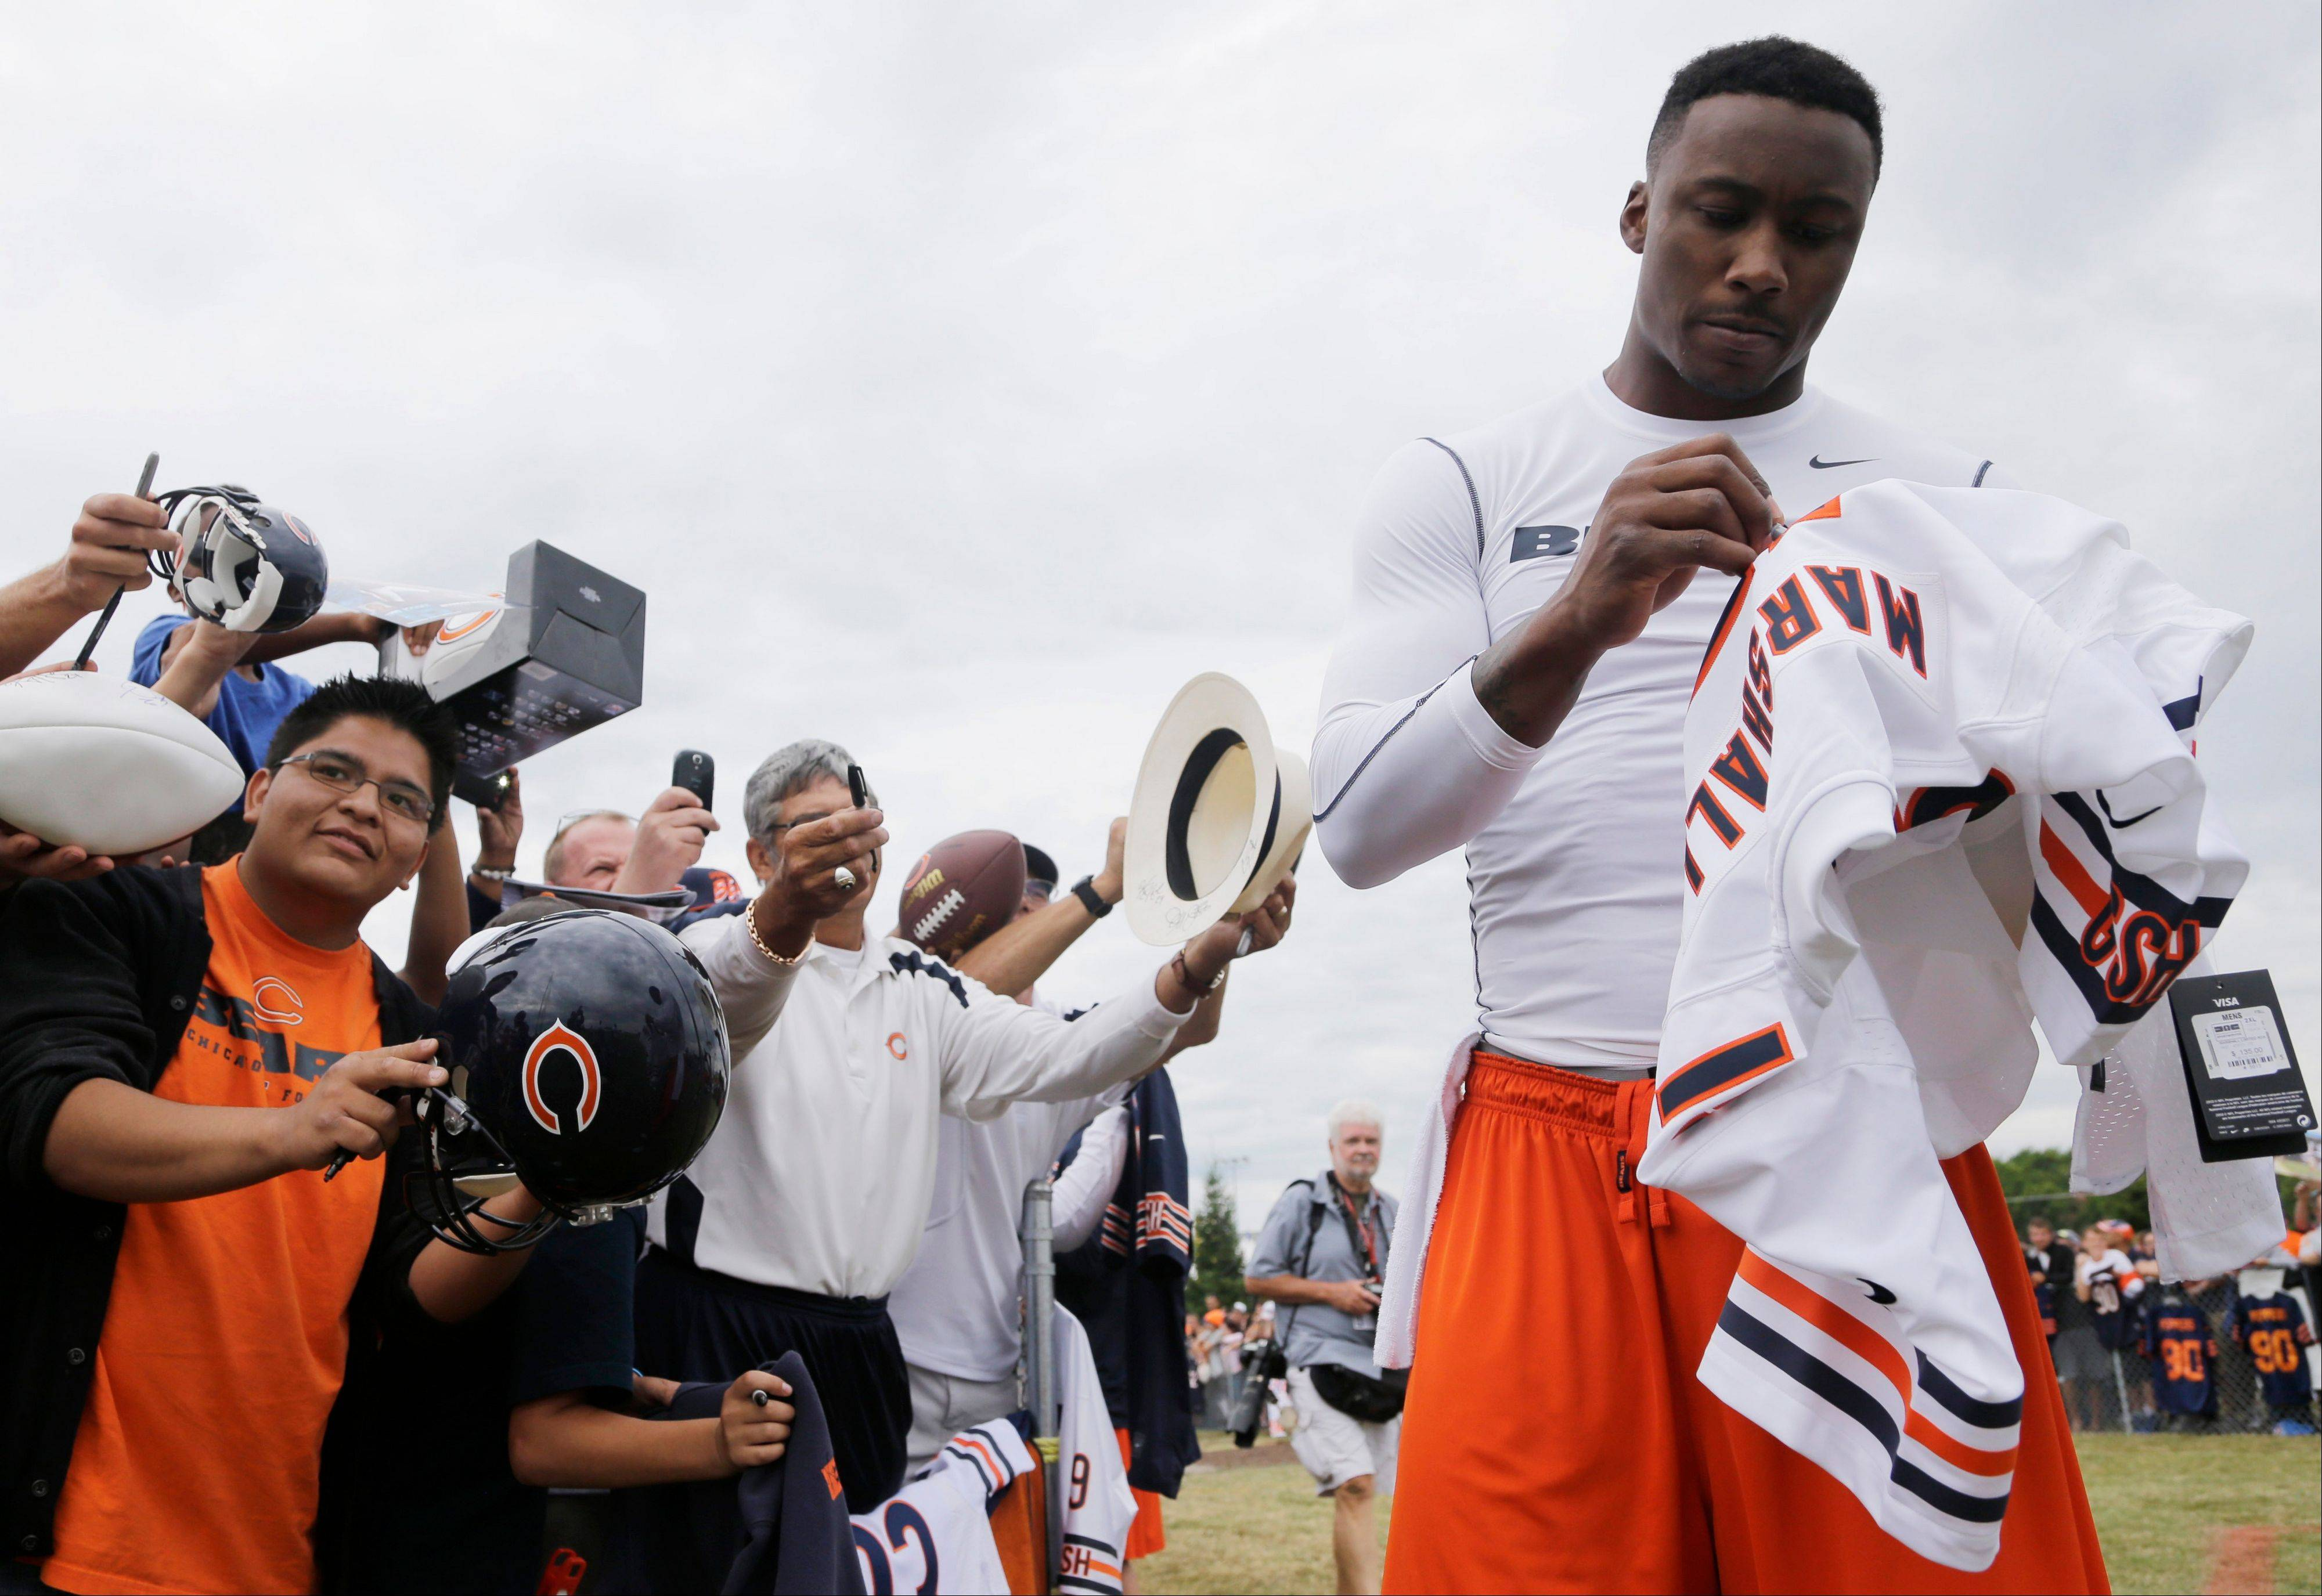 Chicago Bears wide receiver Brandon Marshall, right, signs autographs for fans.